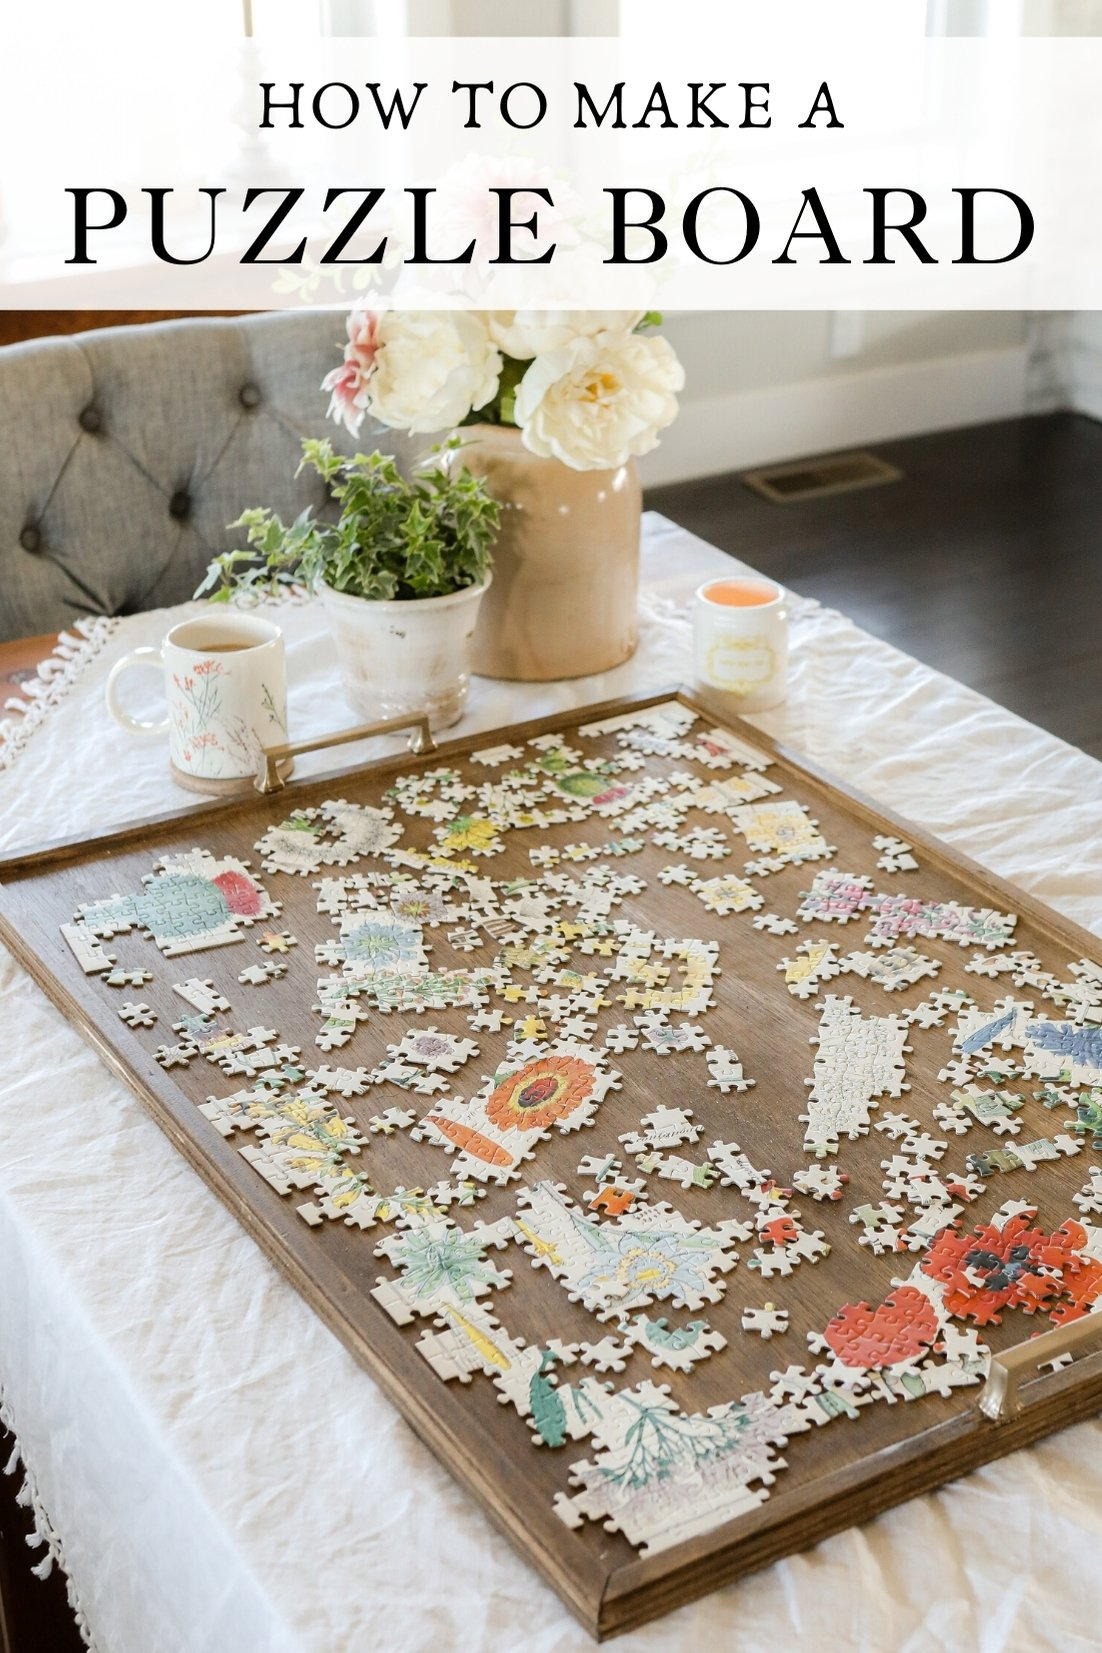 How to make a puzzle board